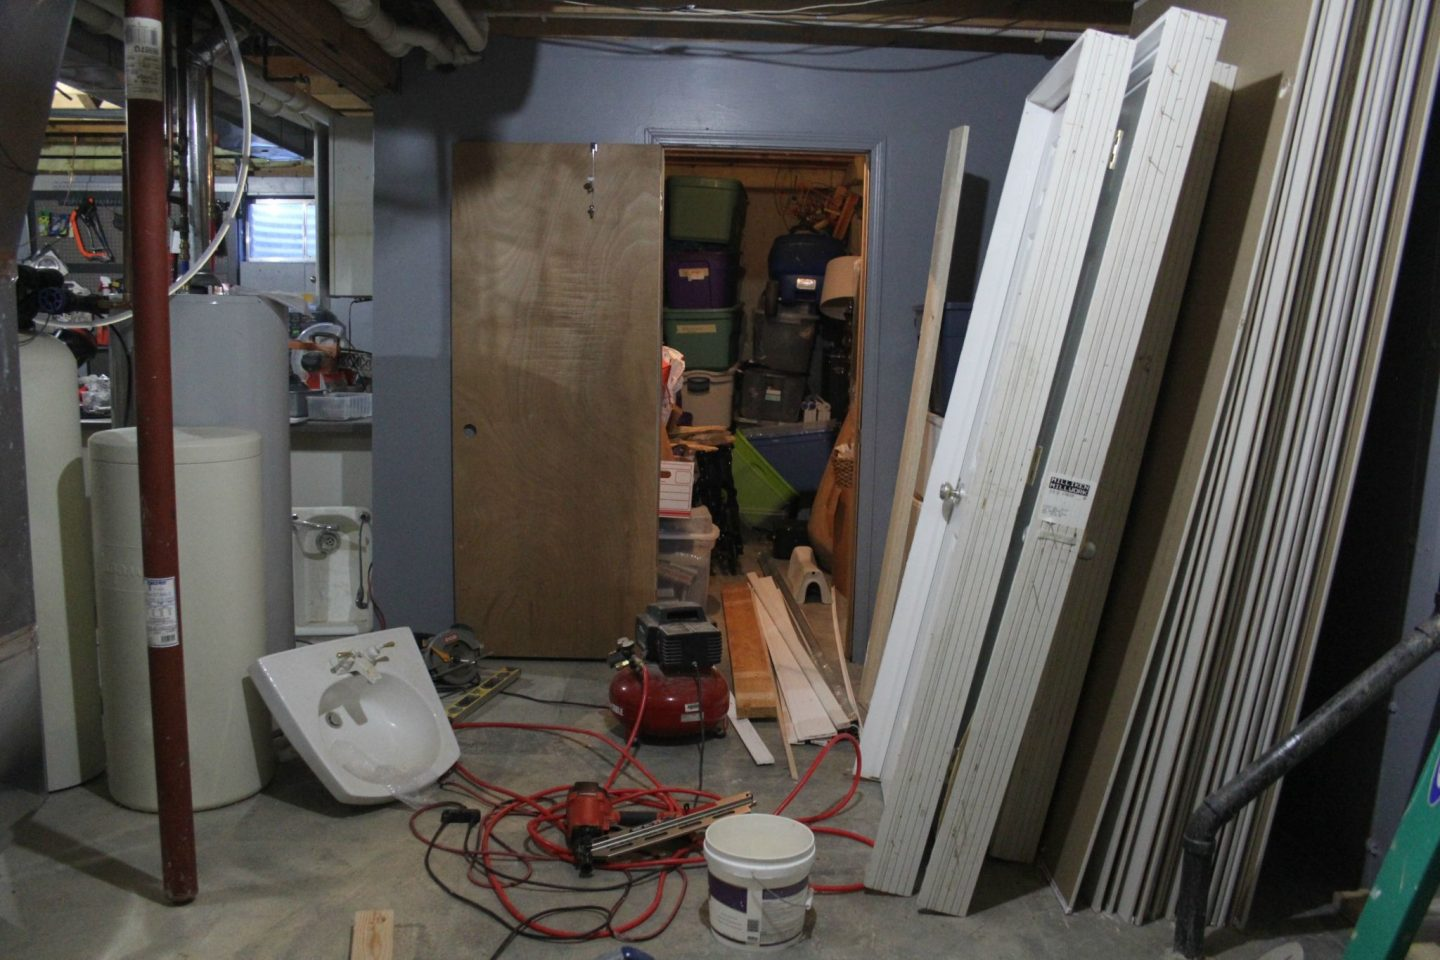 You won't believe how this ugly basement space looks now that we added a pretty, spa-like bathroom! #DIY #bathroomdesign #renovation #beforeandafter